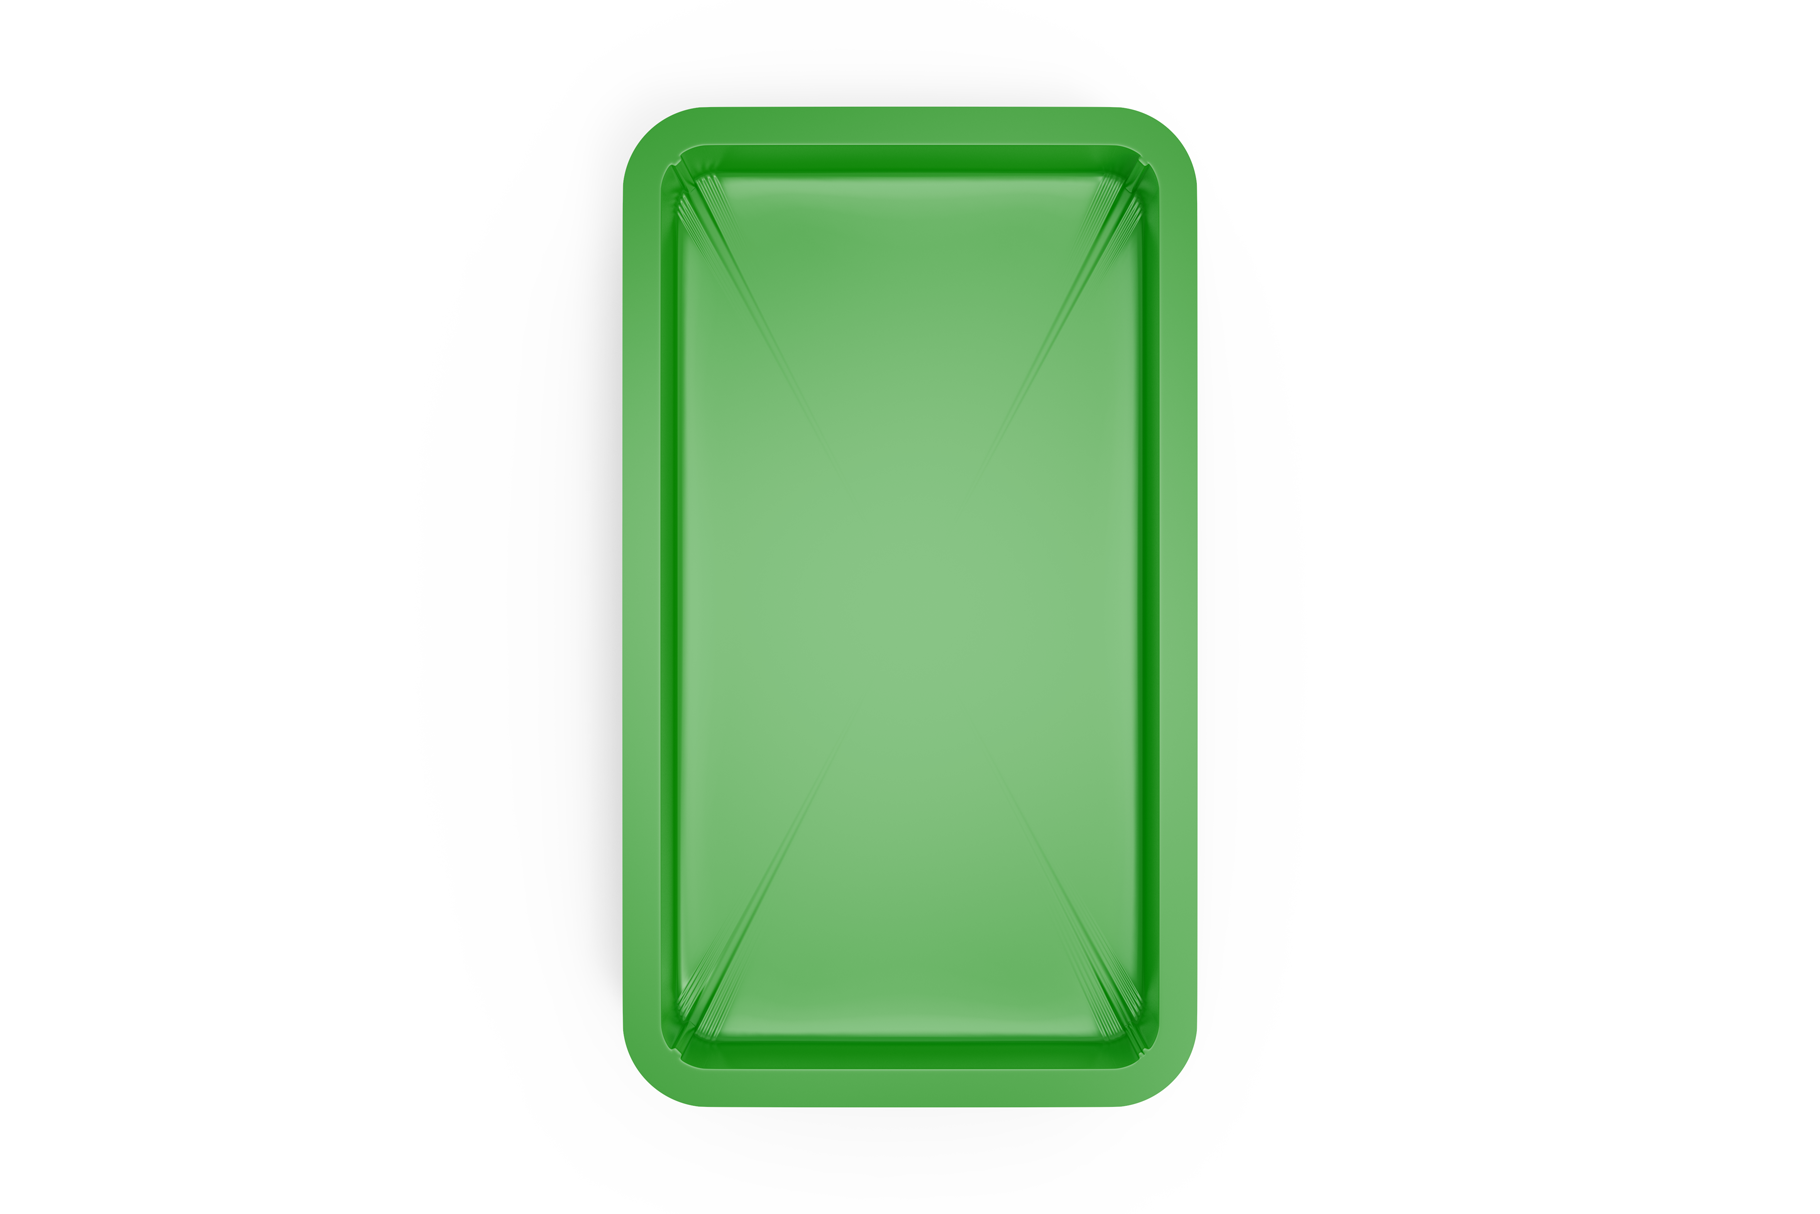 Plastic Tray With Asparagus Mockup example image 6